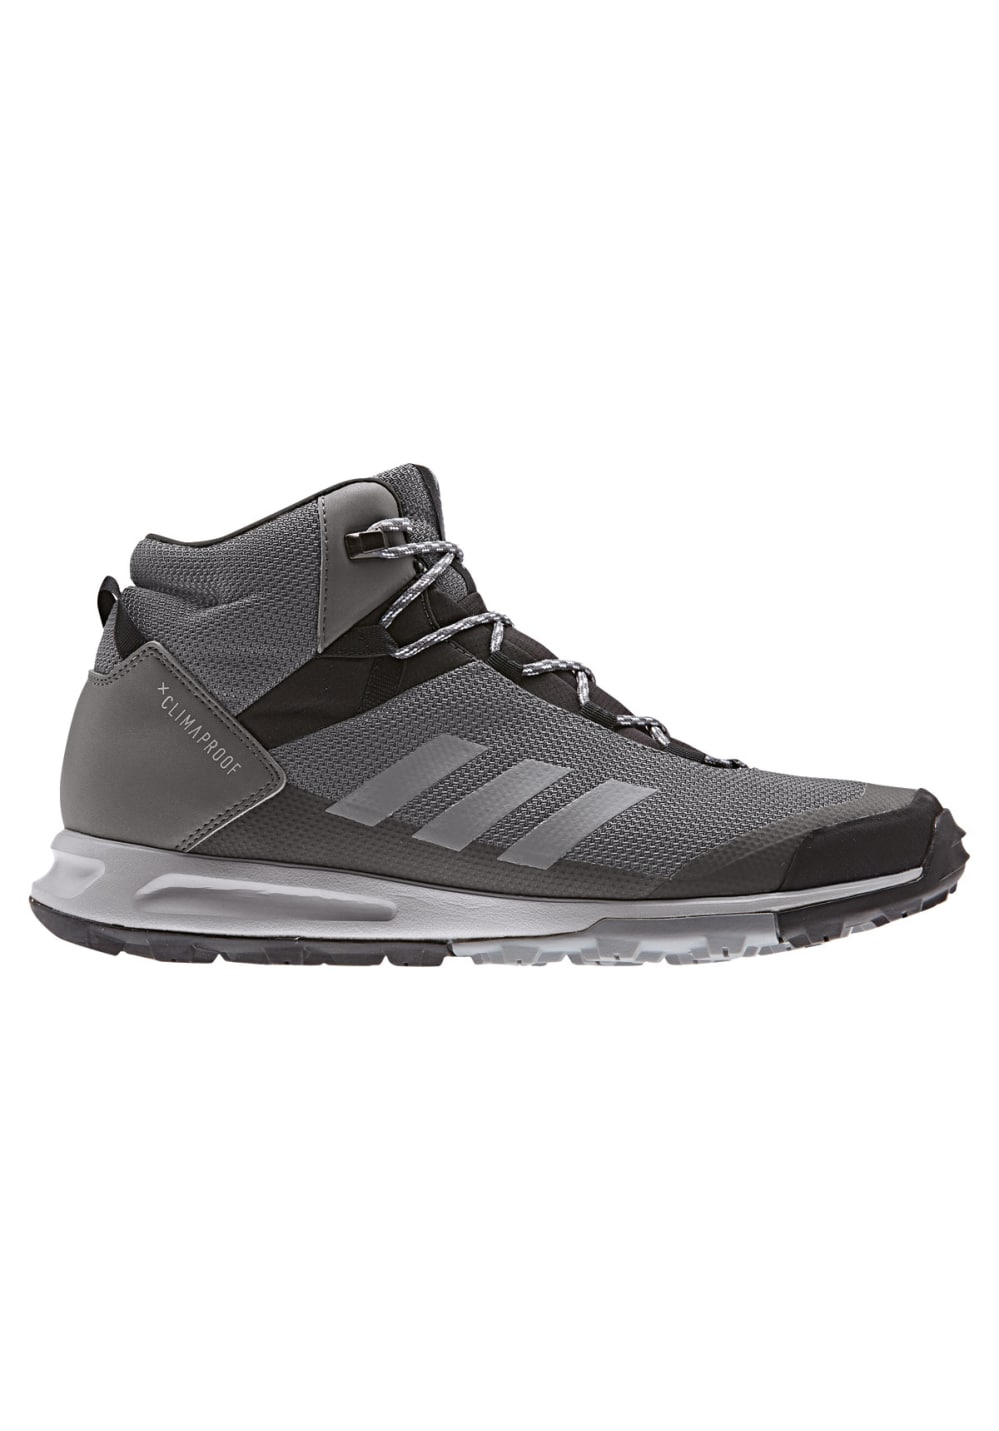 c7747c8bd23 adidas TERREX Tivid Mid ClimaProof - Outdoor shoes for Men - Grey